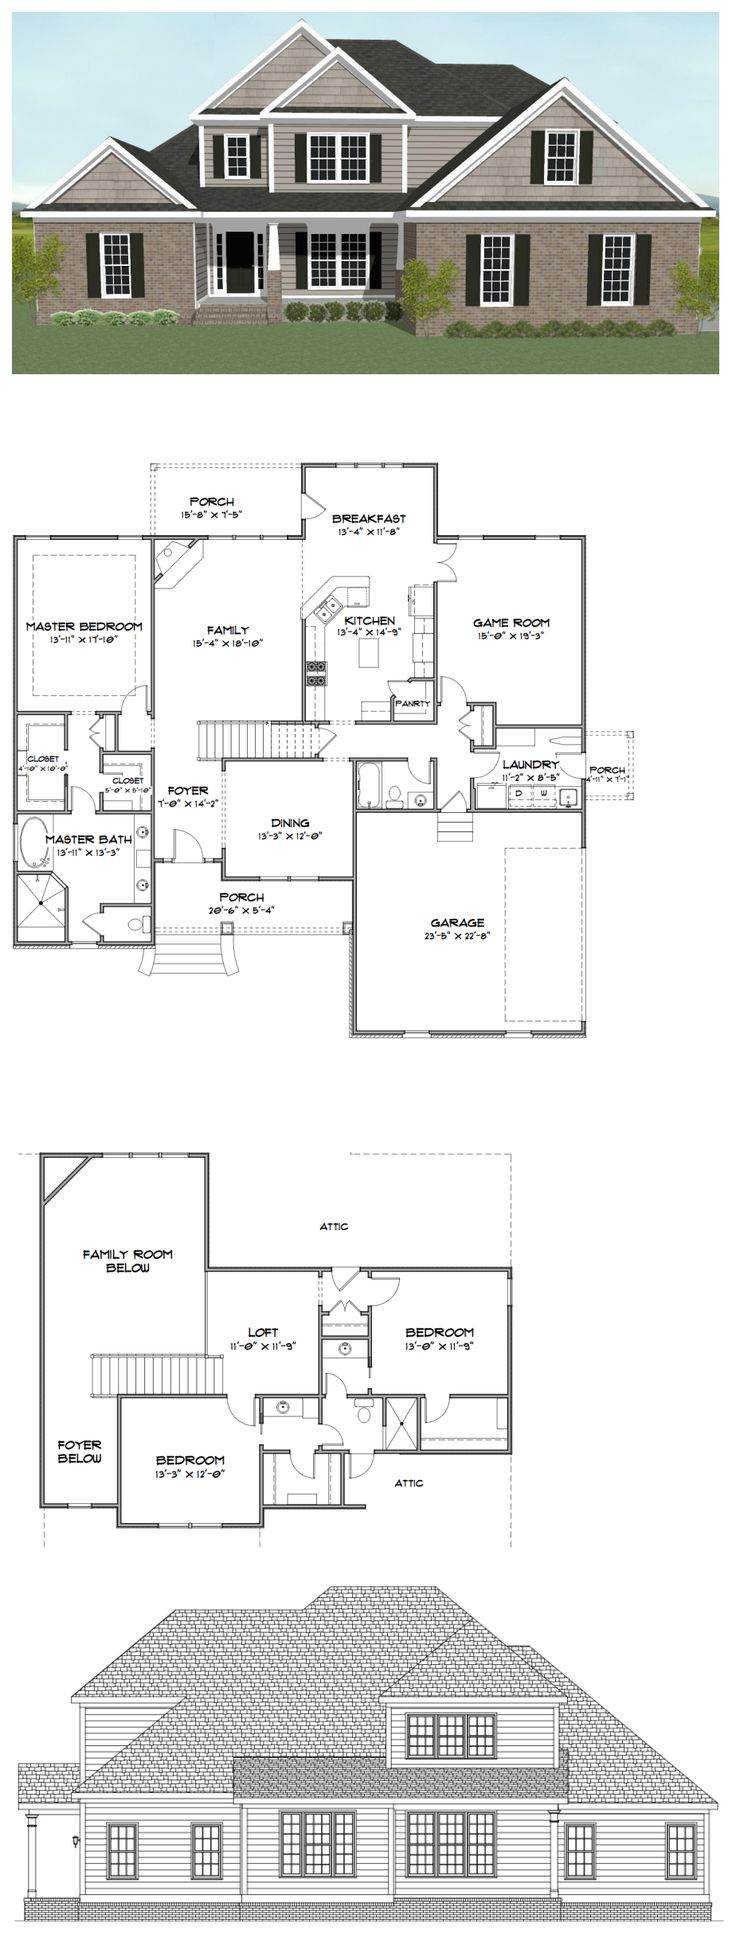 1000 images about house plans over 2800 sq ft on 2800 square foot house plans